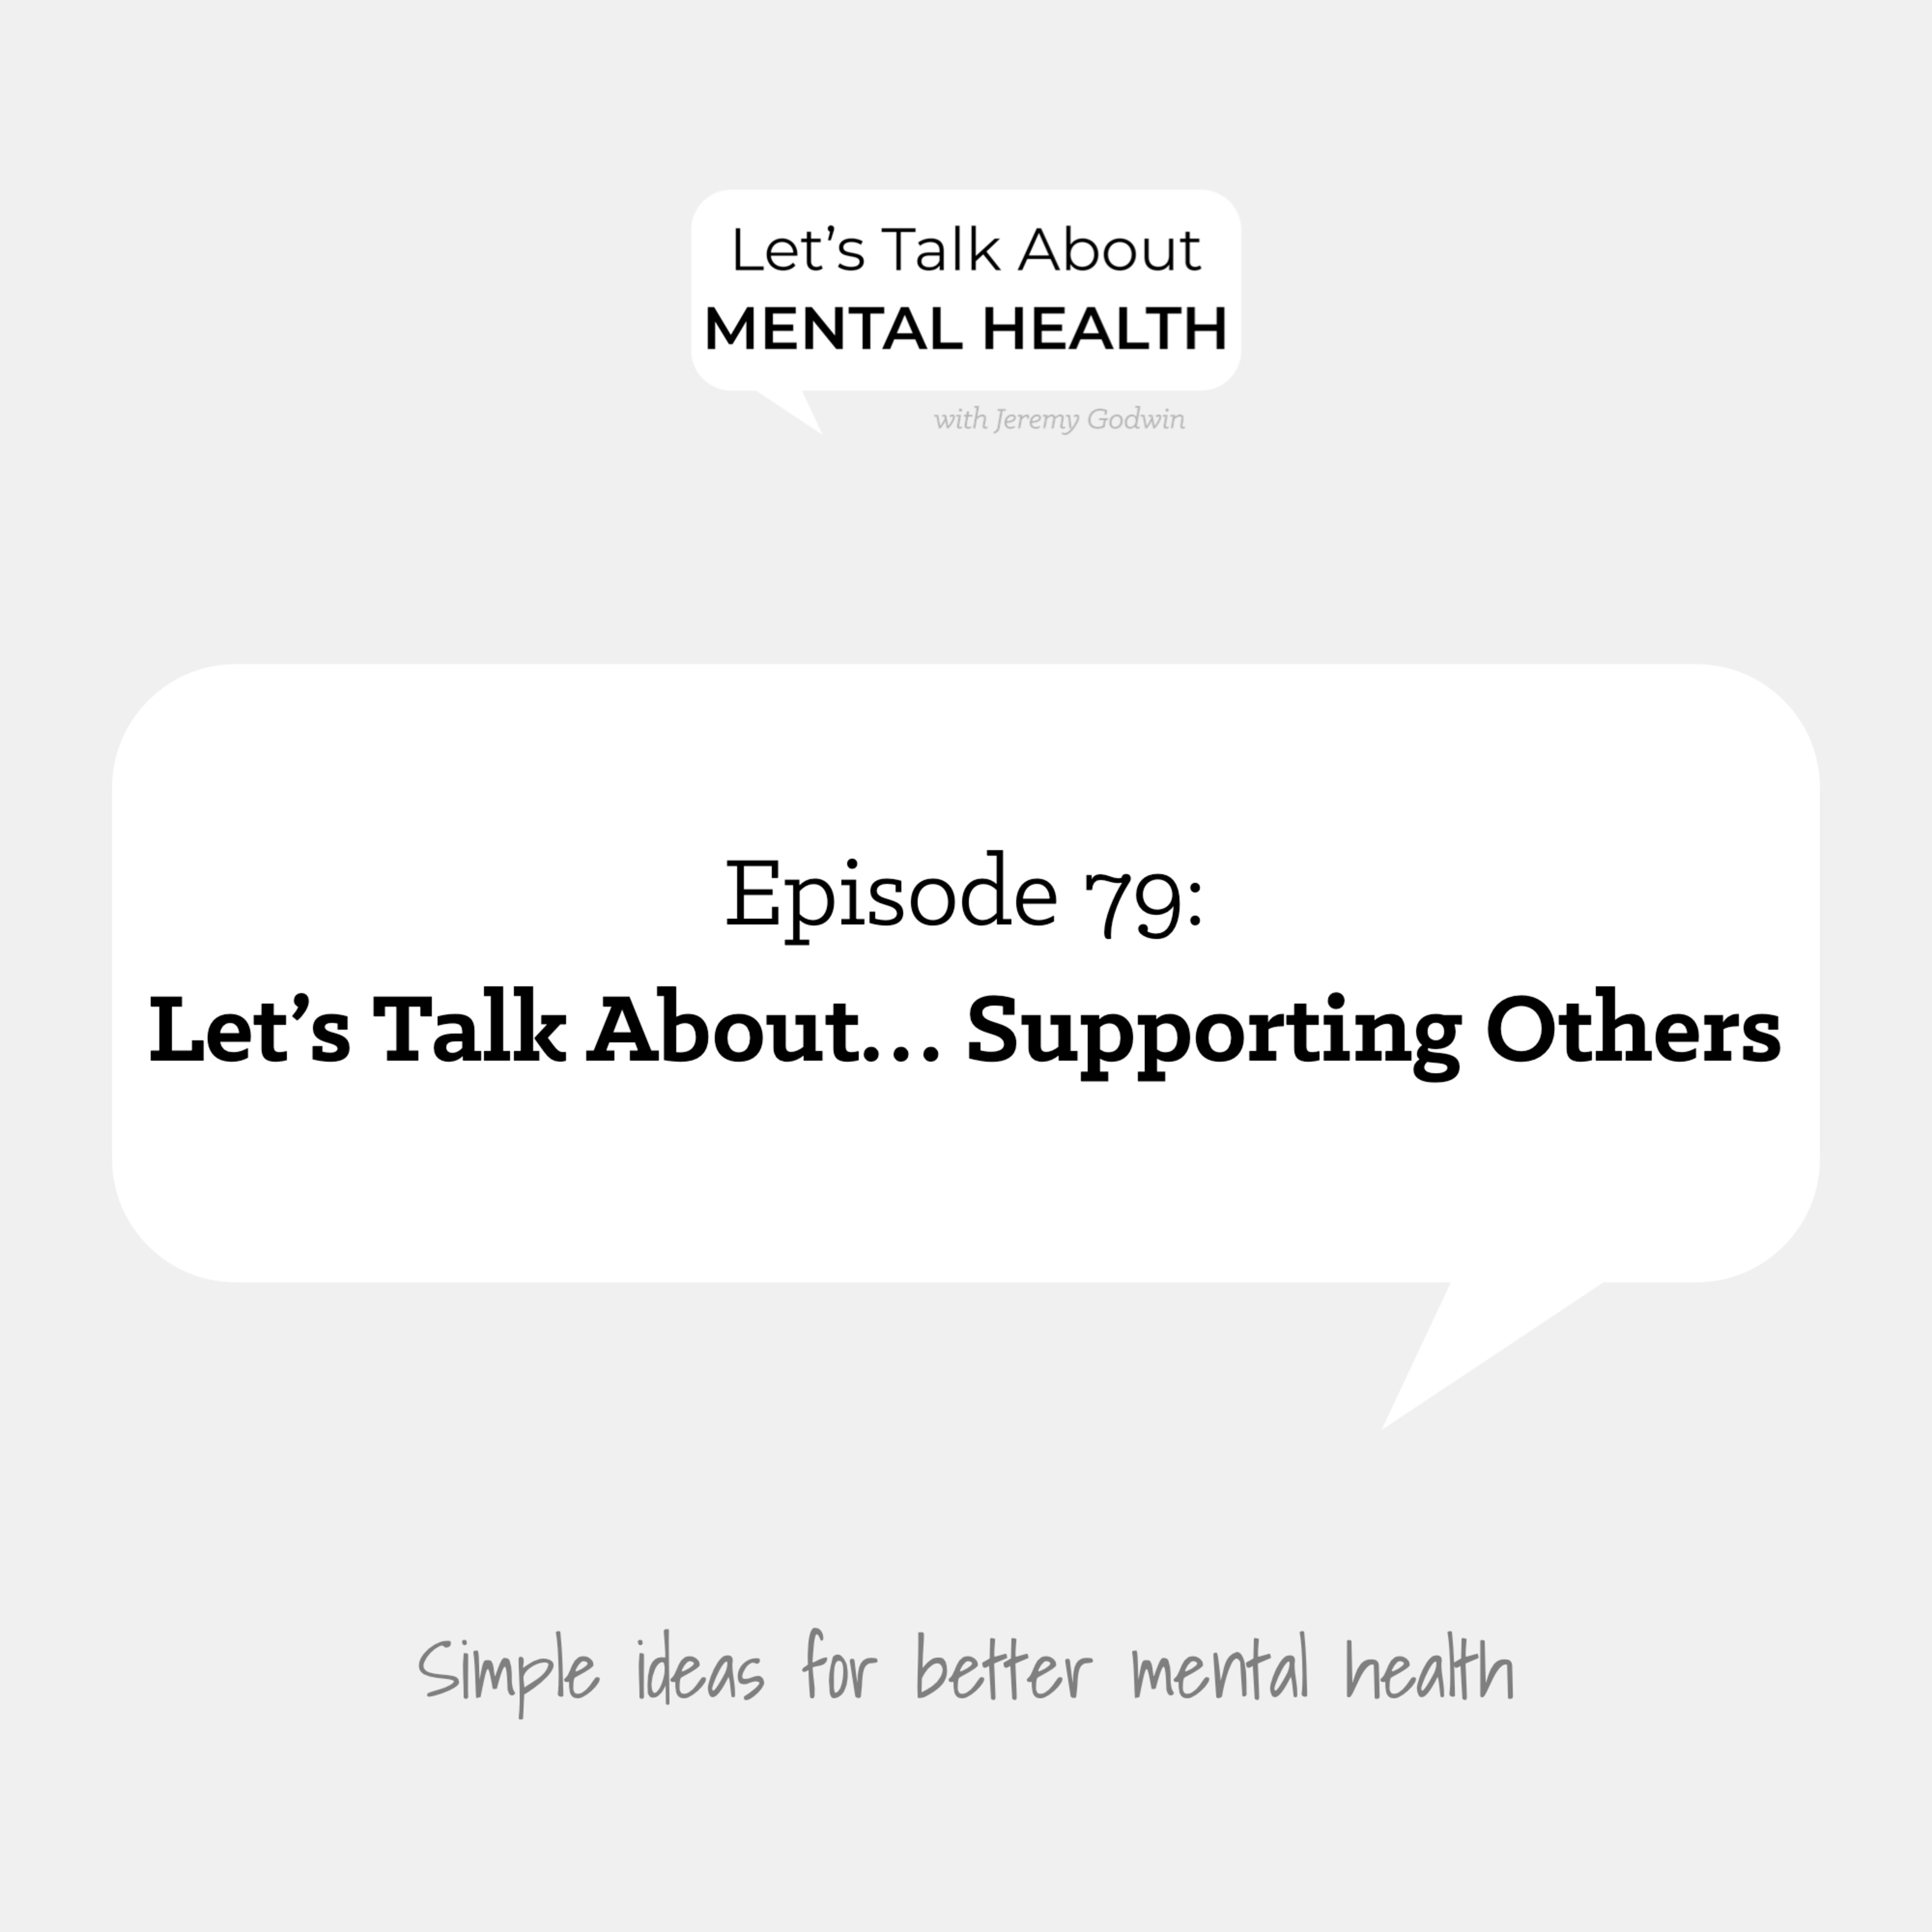 Let's Talk About Mental Health - Let's Talk About... Supporting Others